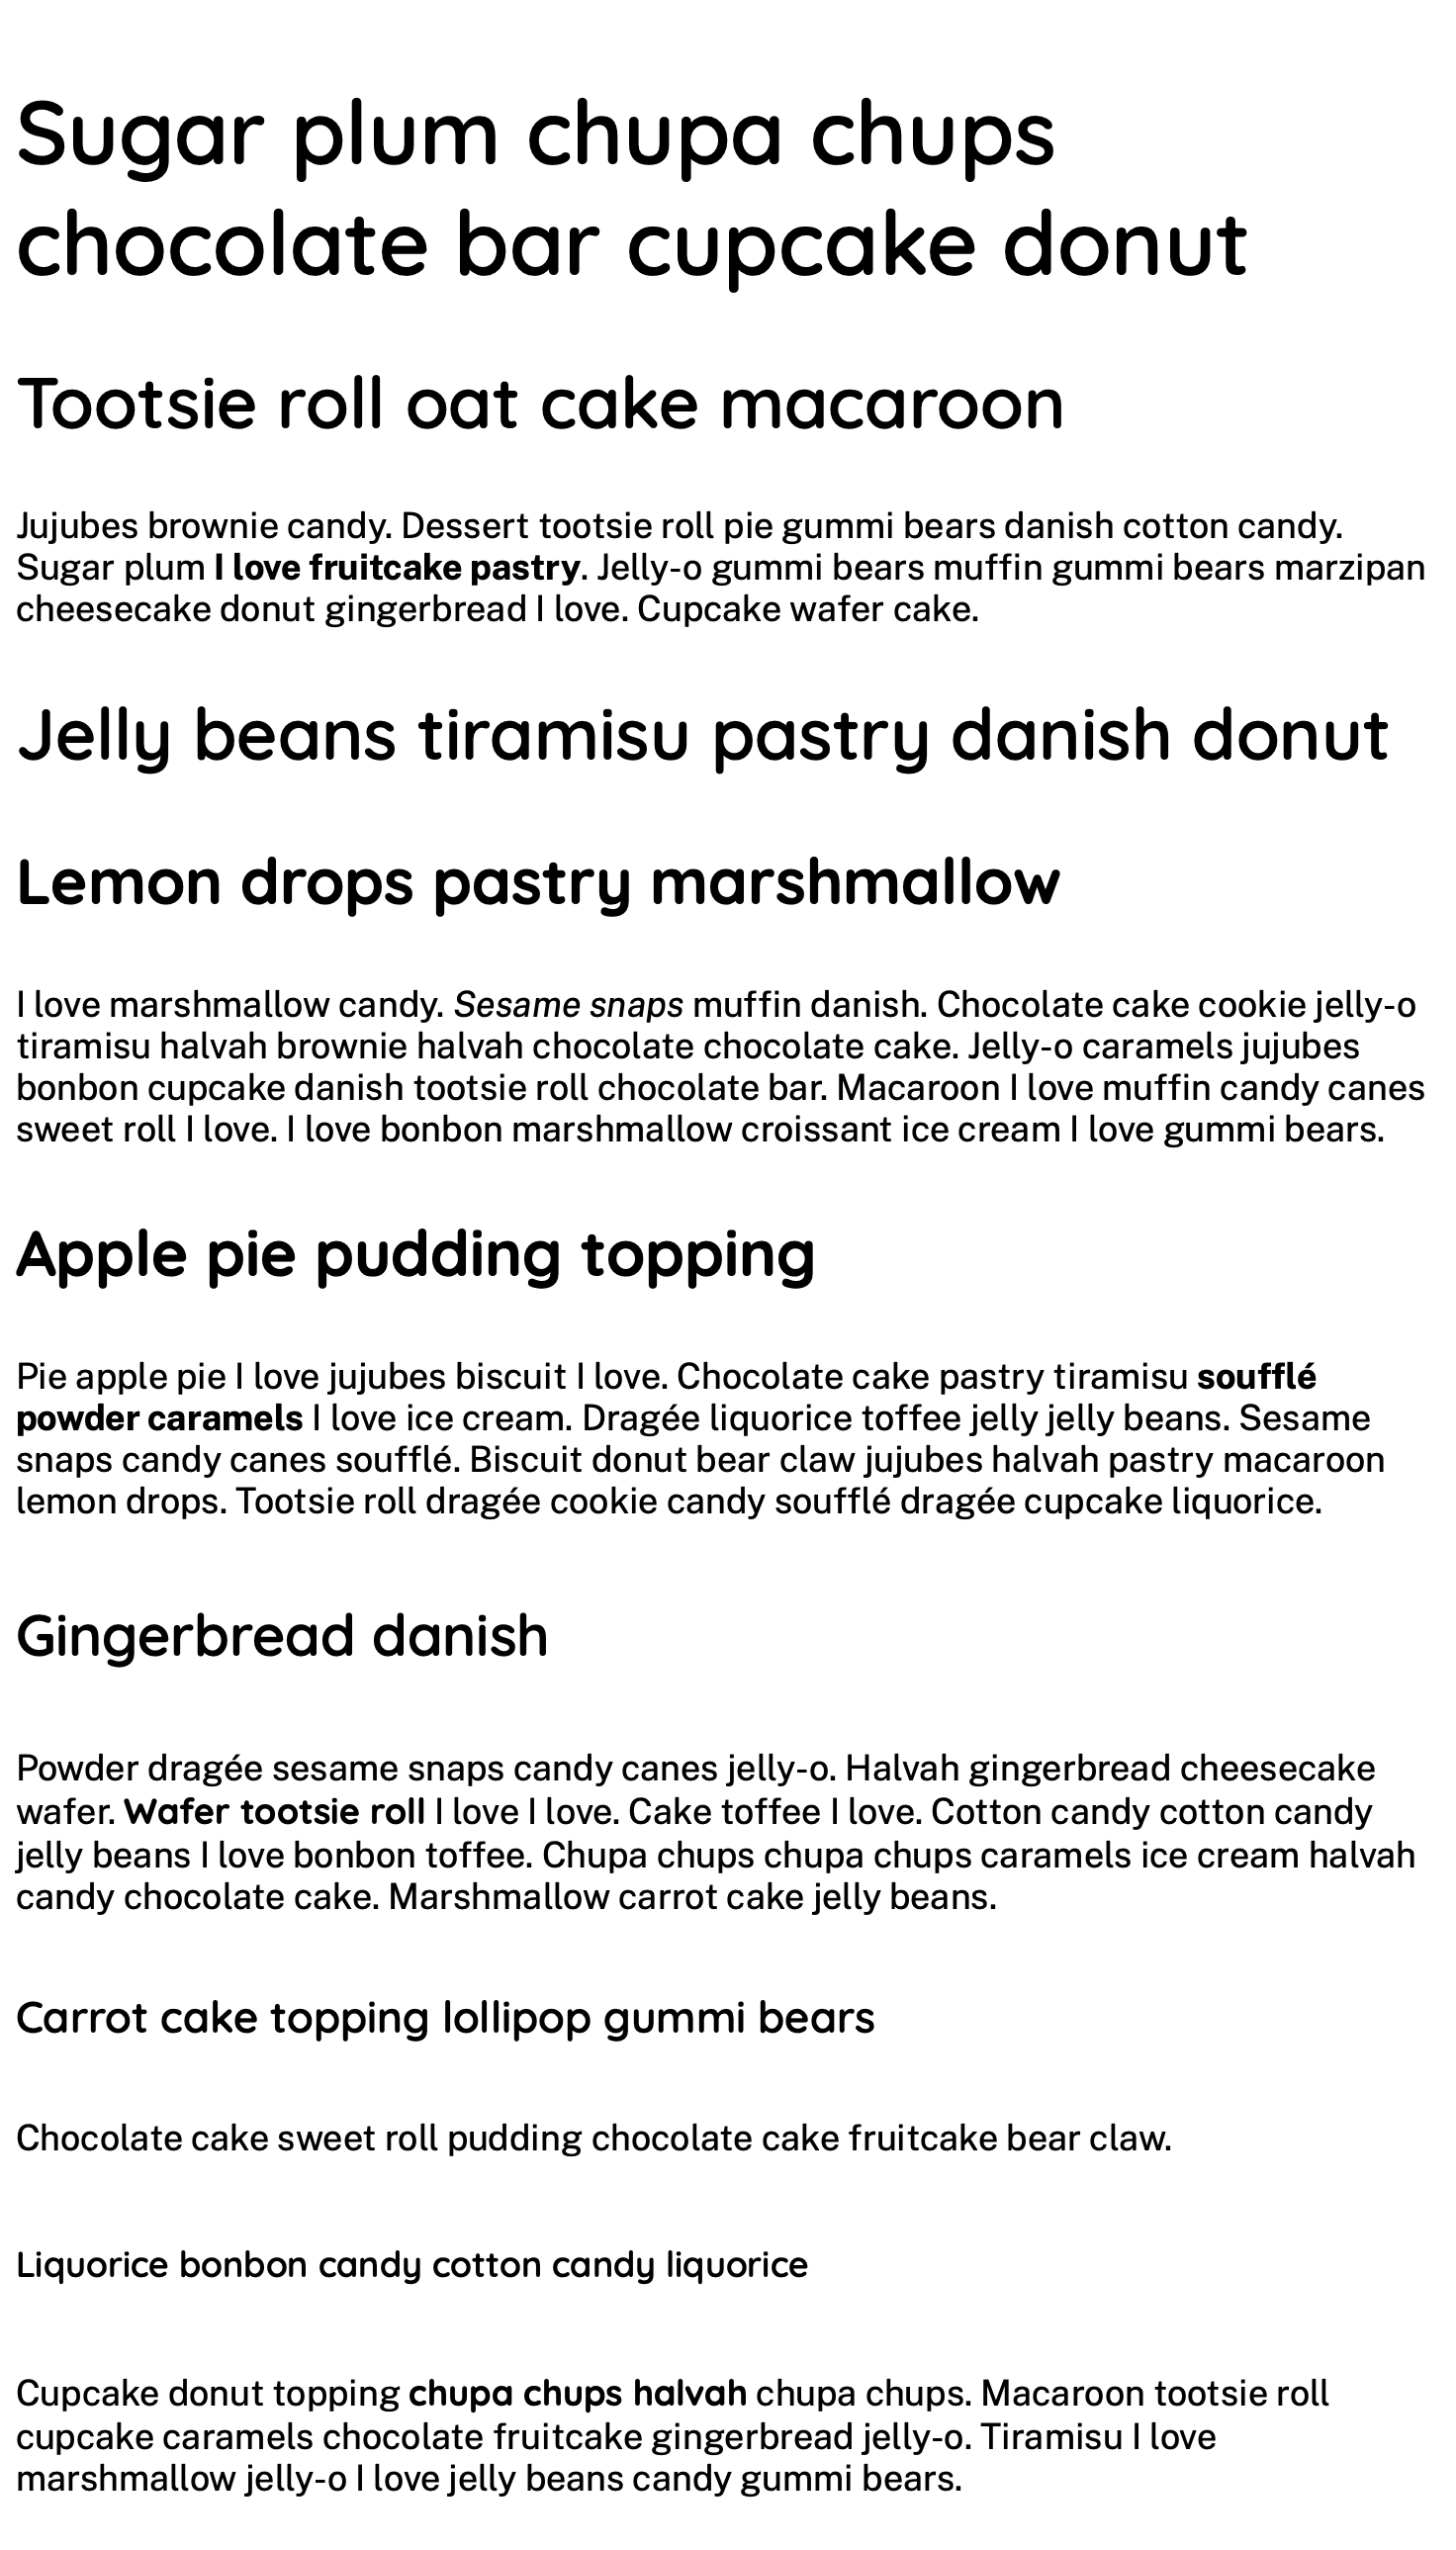 The content of the website in black text with custom font sizes throughout with the main heading being 2.5 times larger than the base text size.